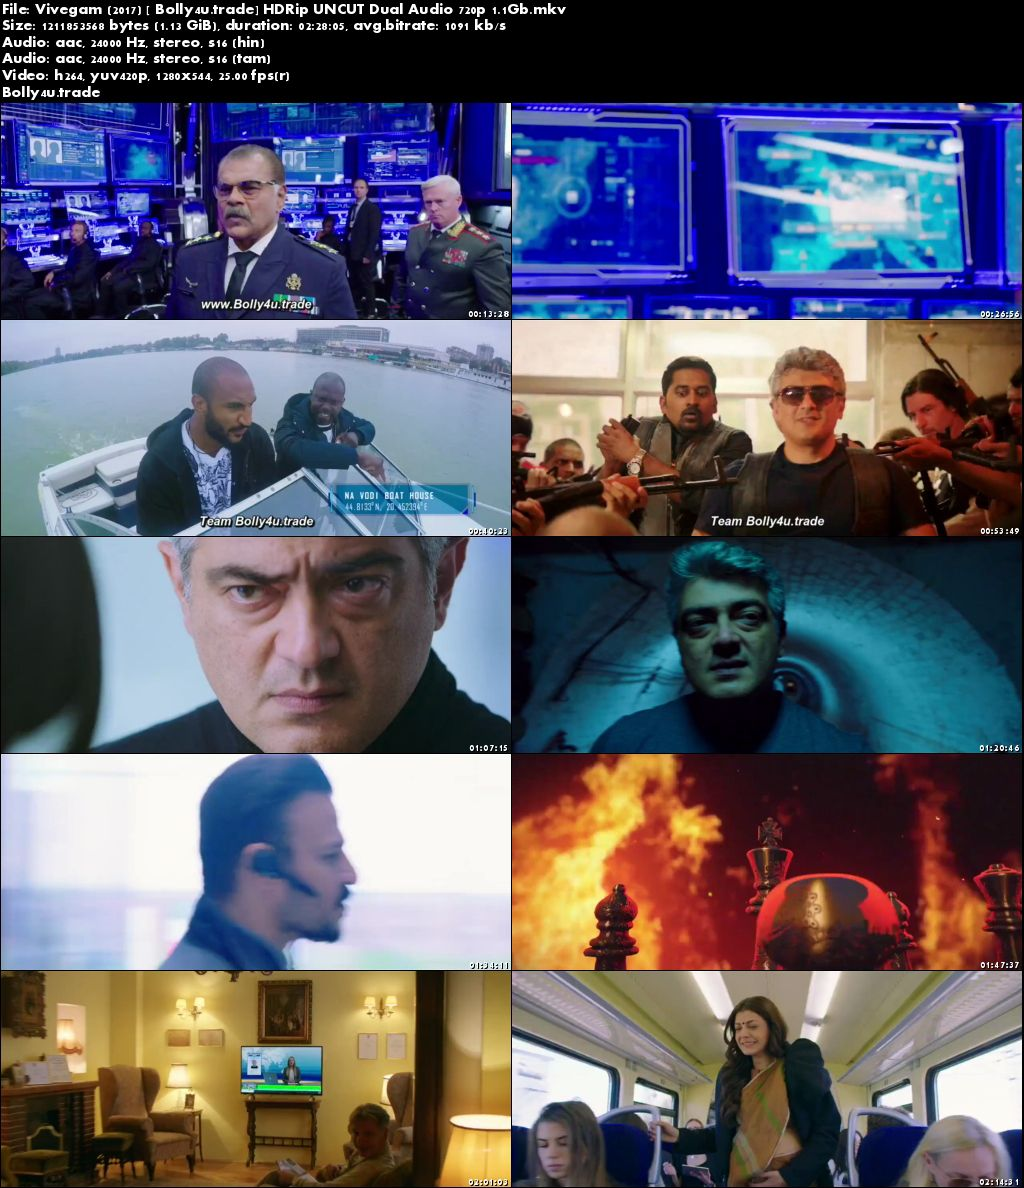 Vivegam 2017 HDRip UNCUT Hindi Dual Audio 720p Download